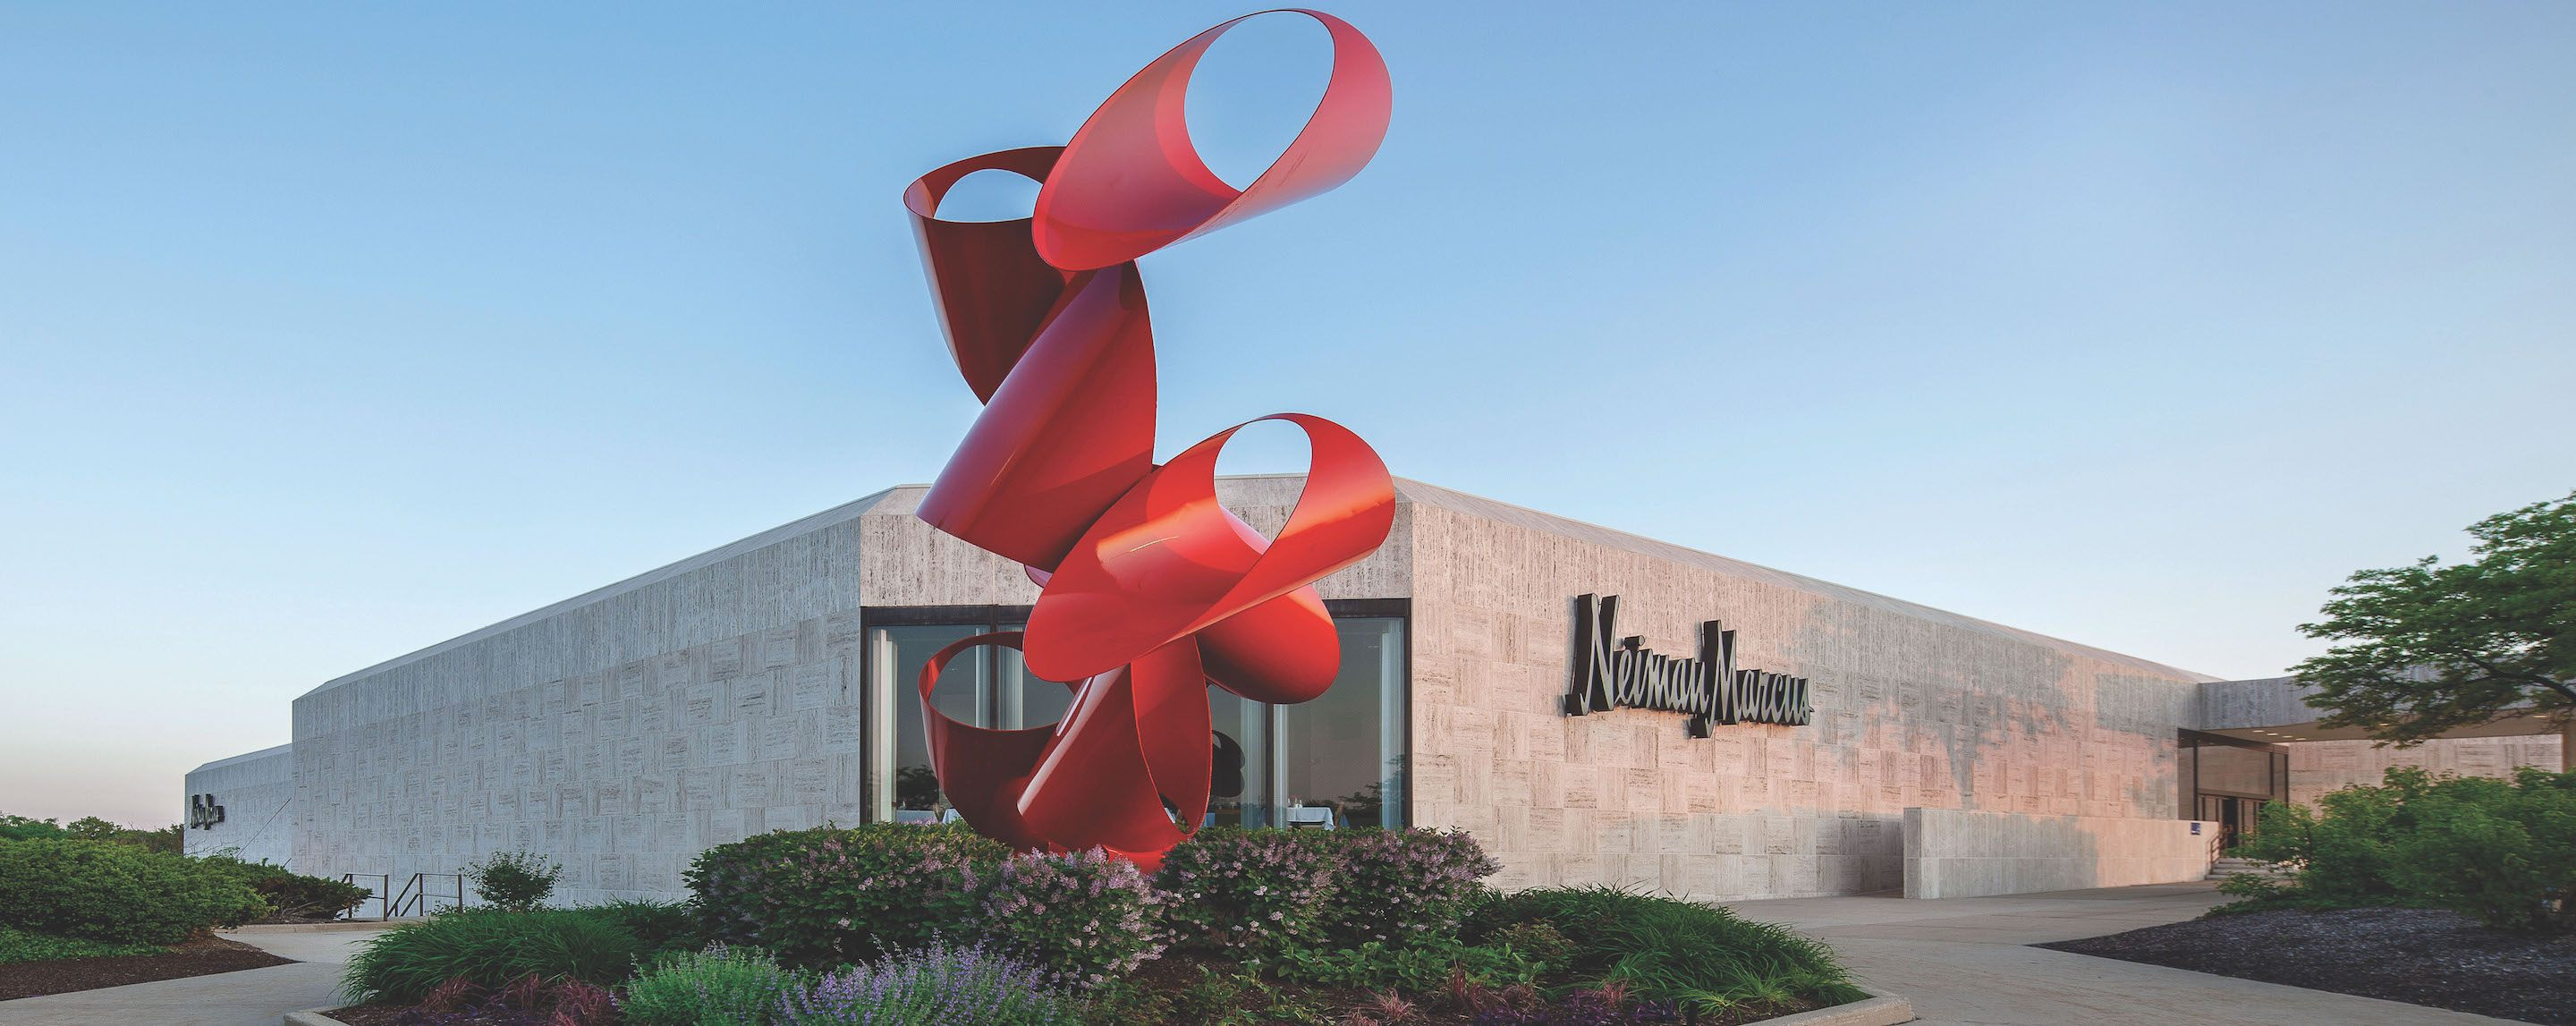 A large red statue is in front of a Neiman Marcus.